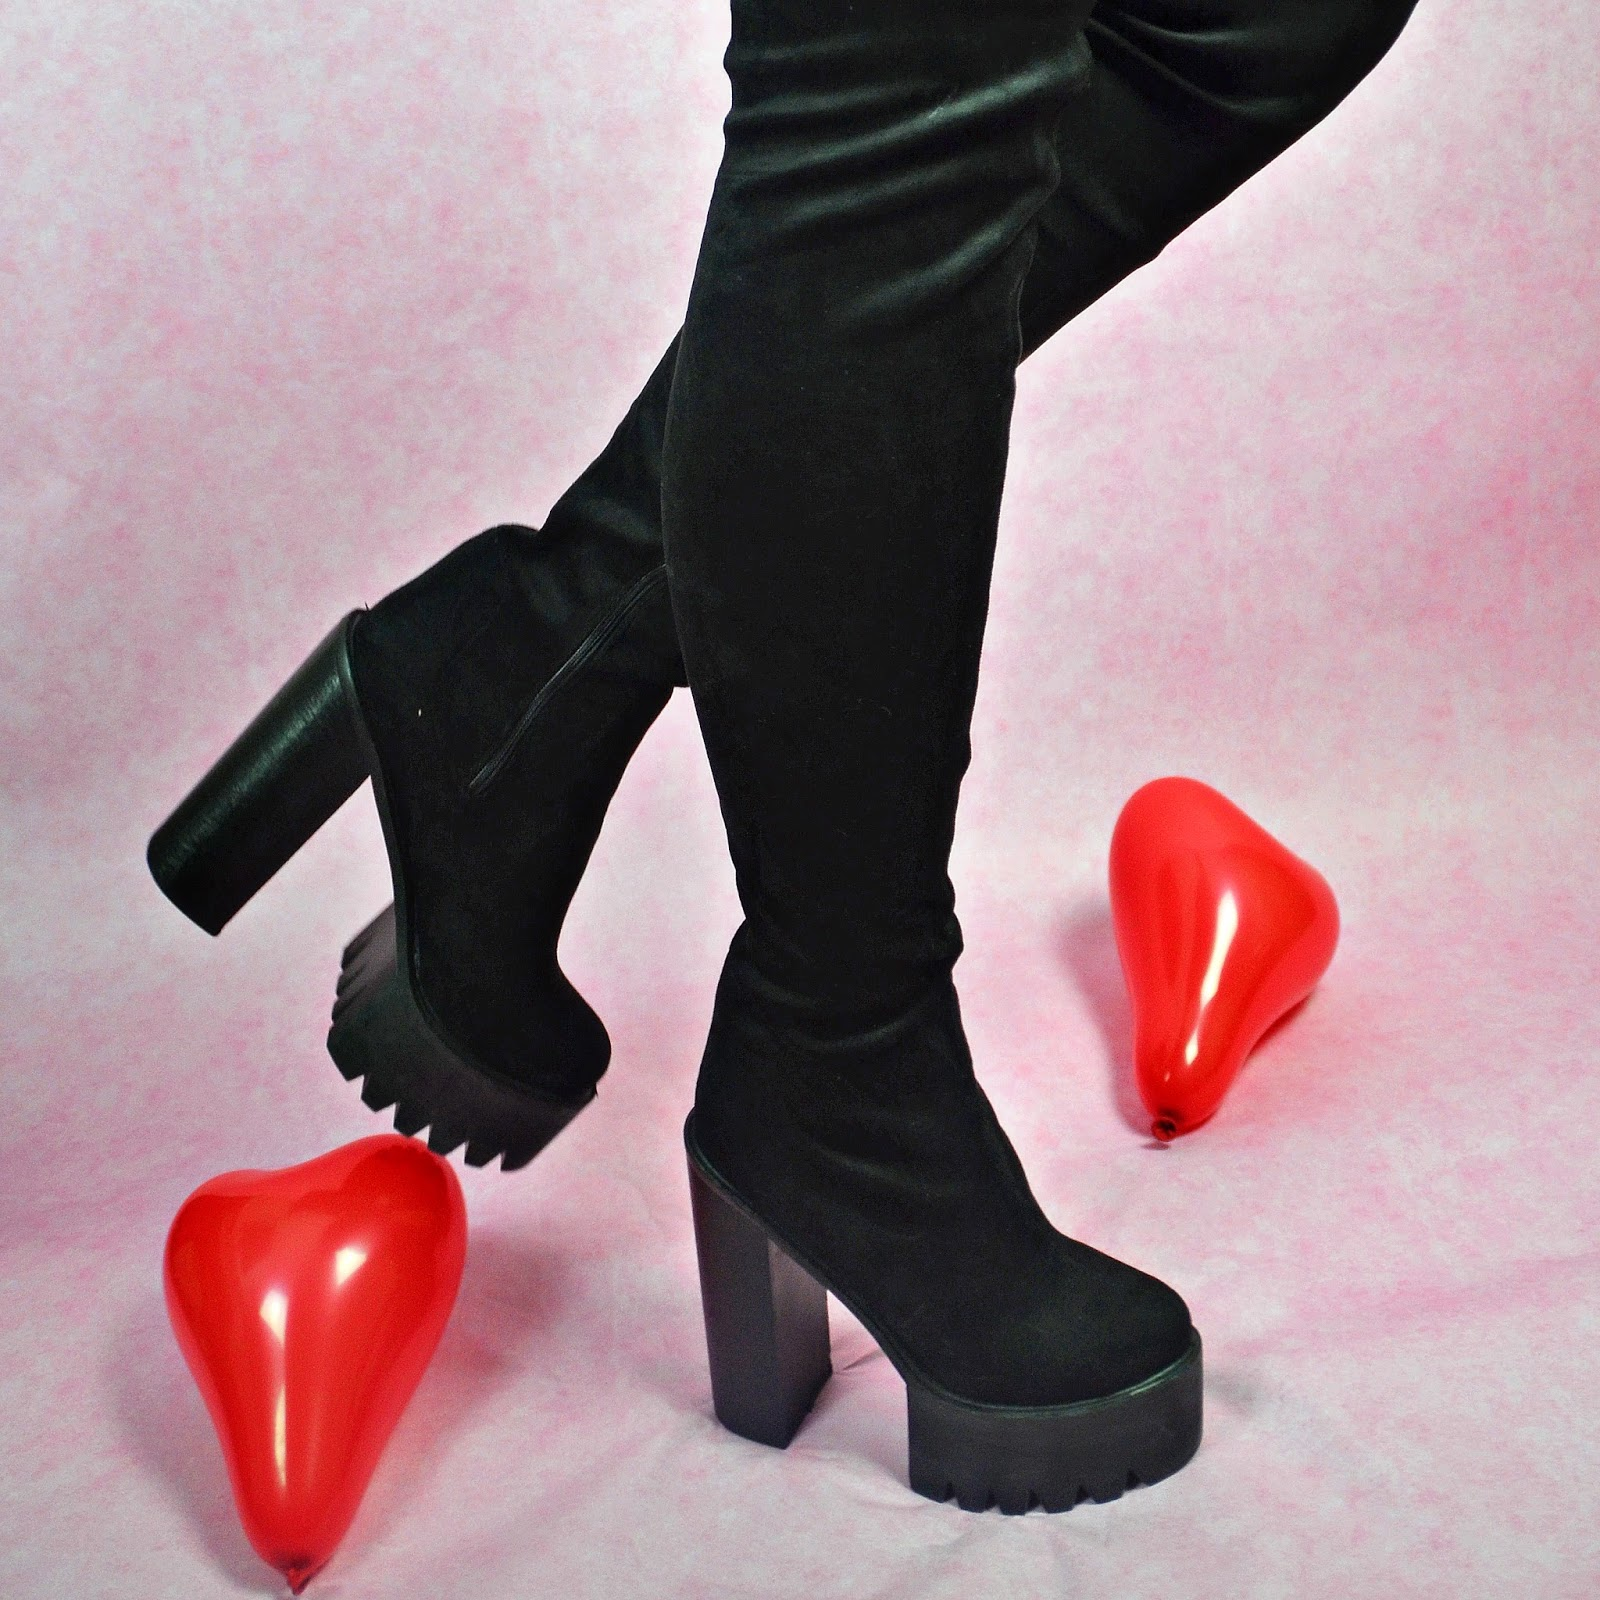 Sole Affair Thigh Knee High Boots, Valentines Day, Review Blog